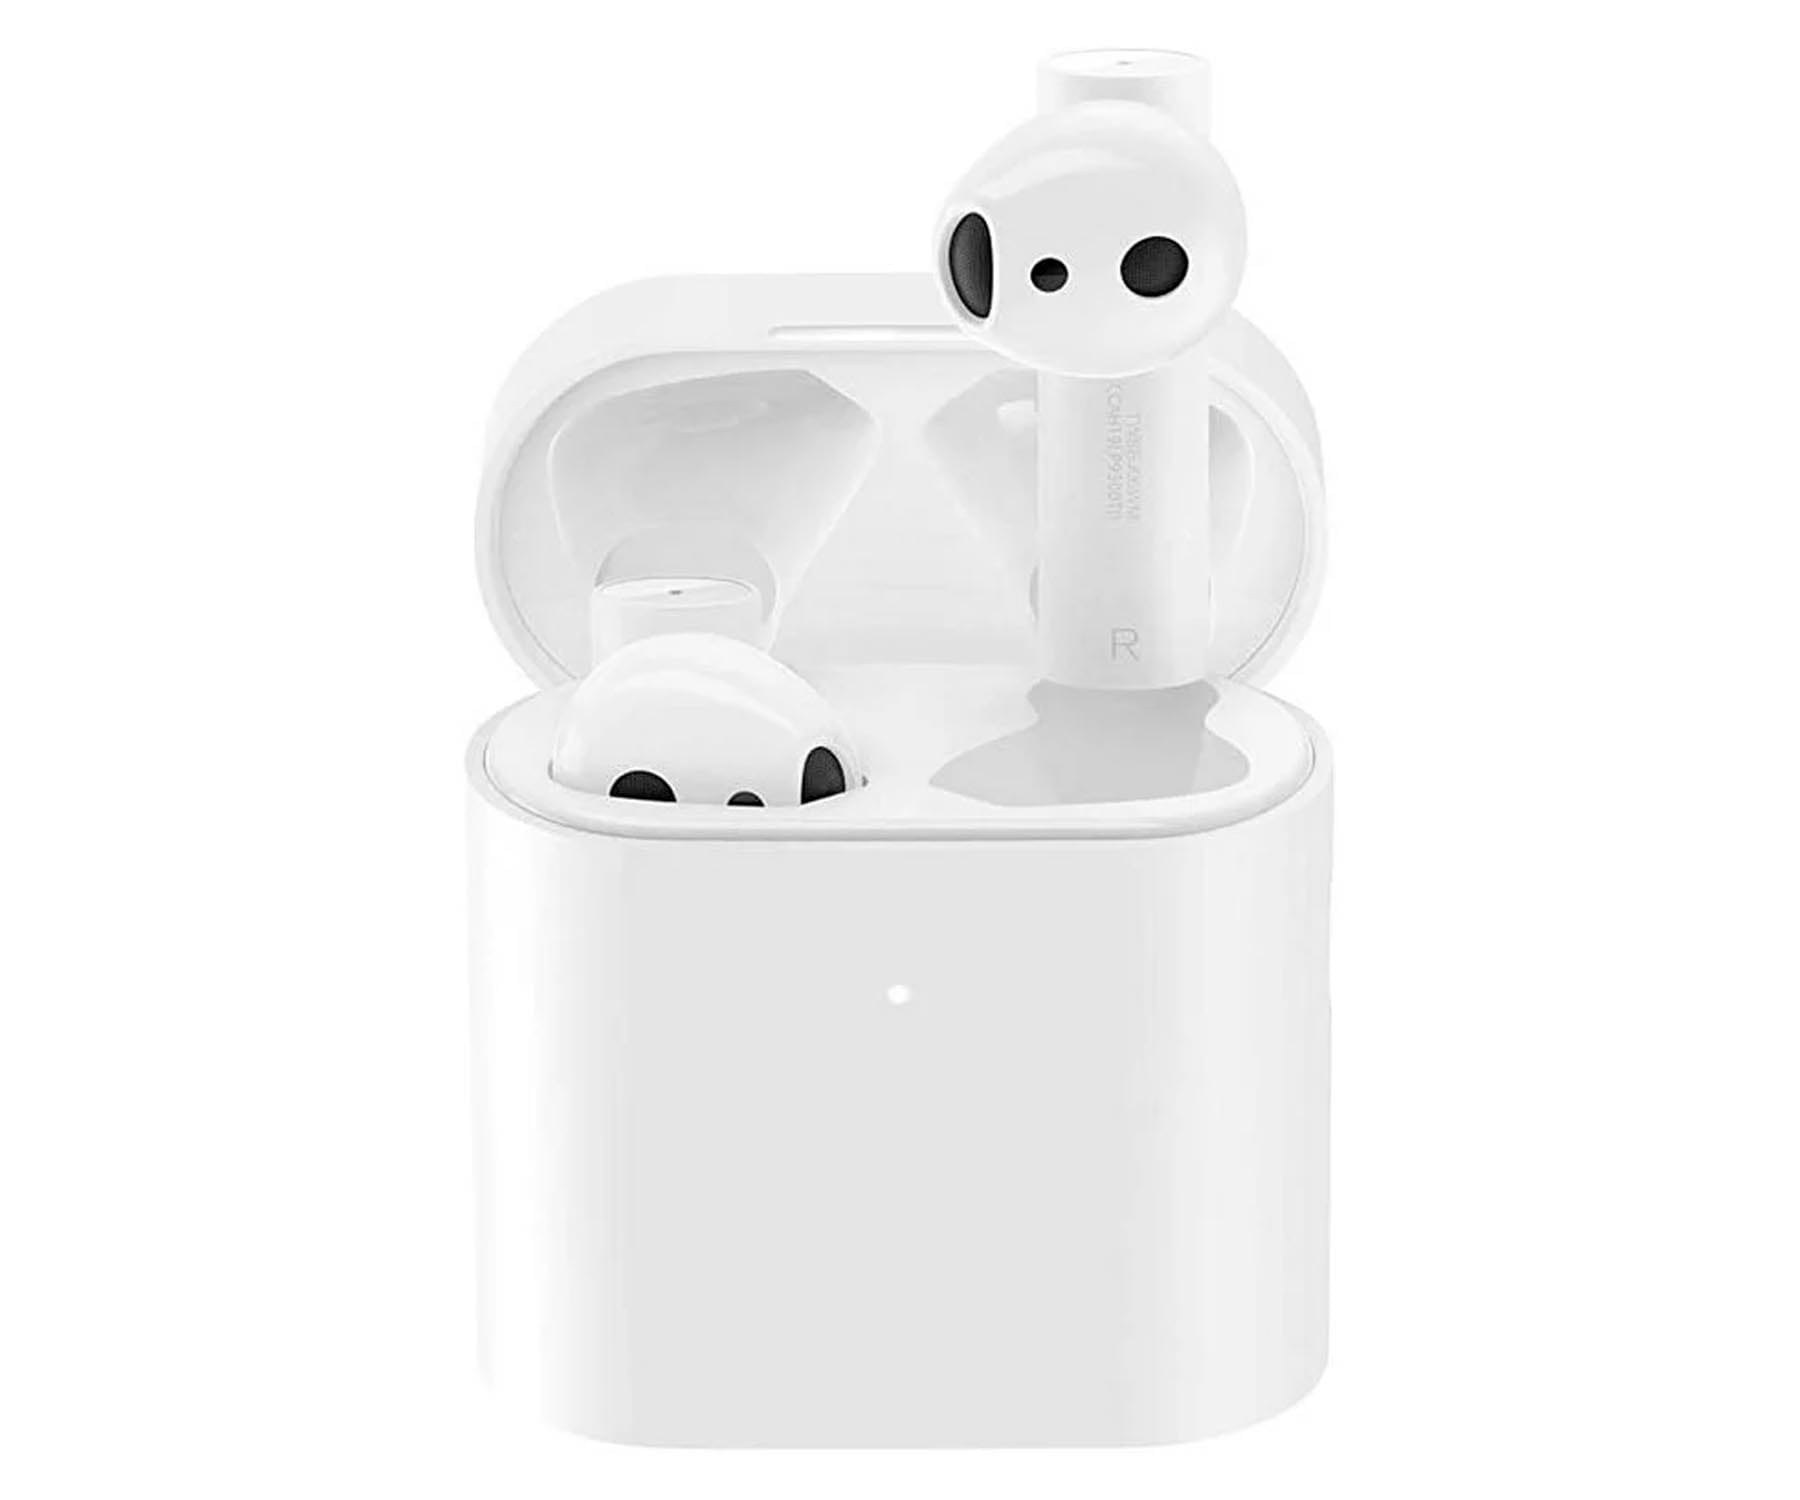 XIAOMI MI TRUE WIRELESS EARPHONES 2S BLANCO AURICULARES INALÁMBRICOS  BLUETOOTH CON ESTUCHE BATERÍA